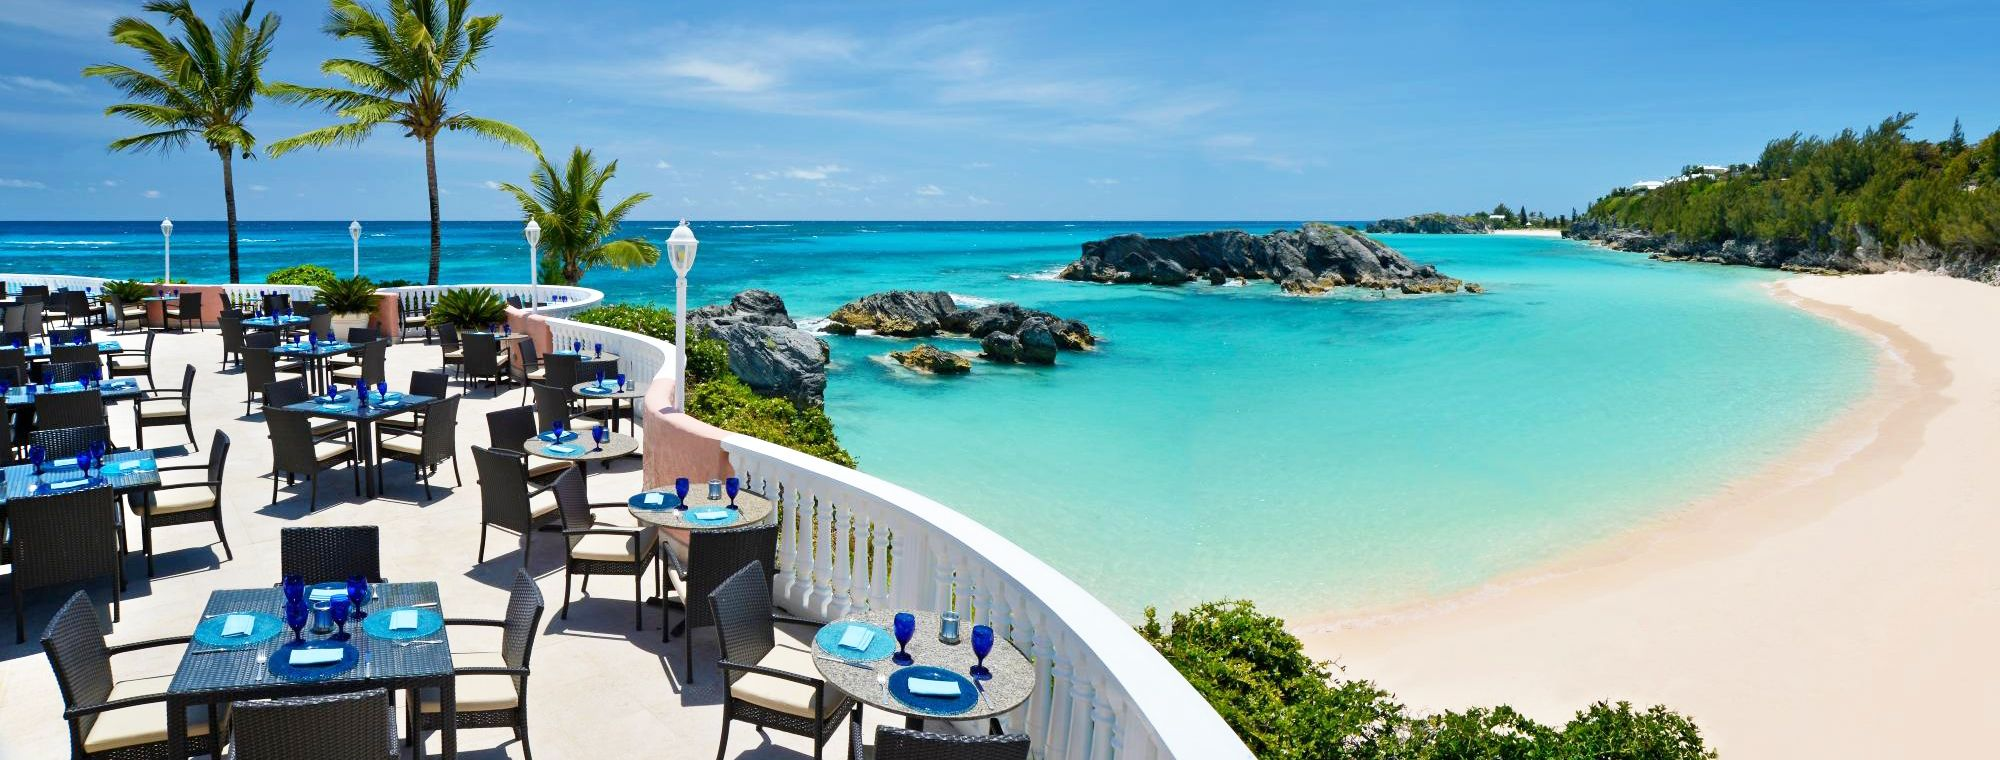 5 reasons why you should consider an allinclusive resort